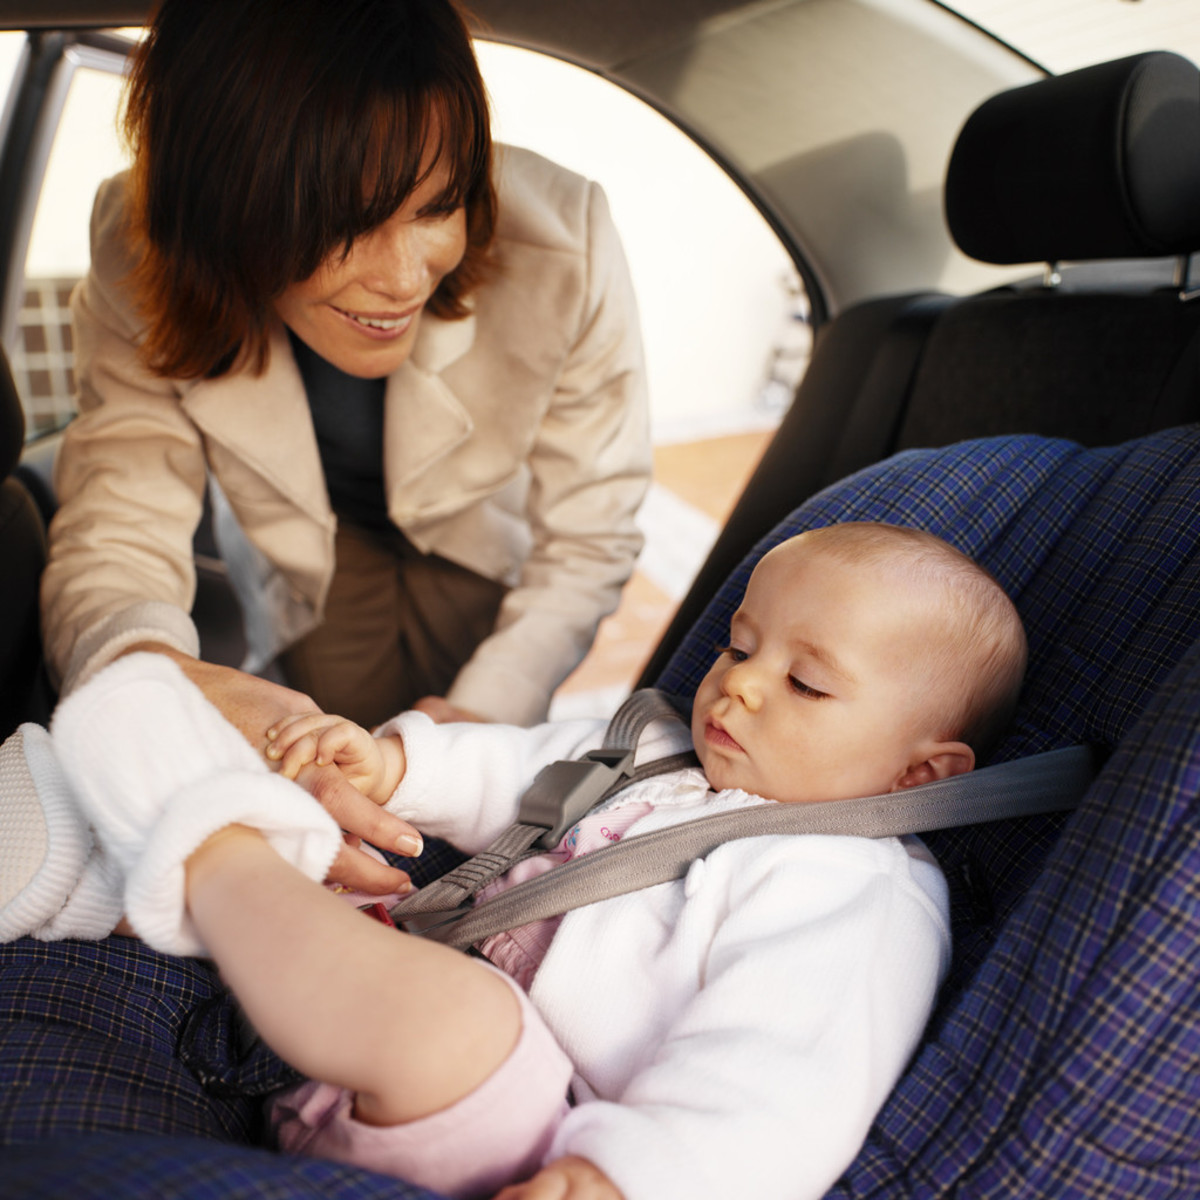 Keeping your kids safe goes way beyond car safety